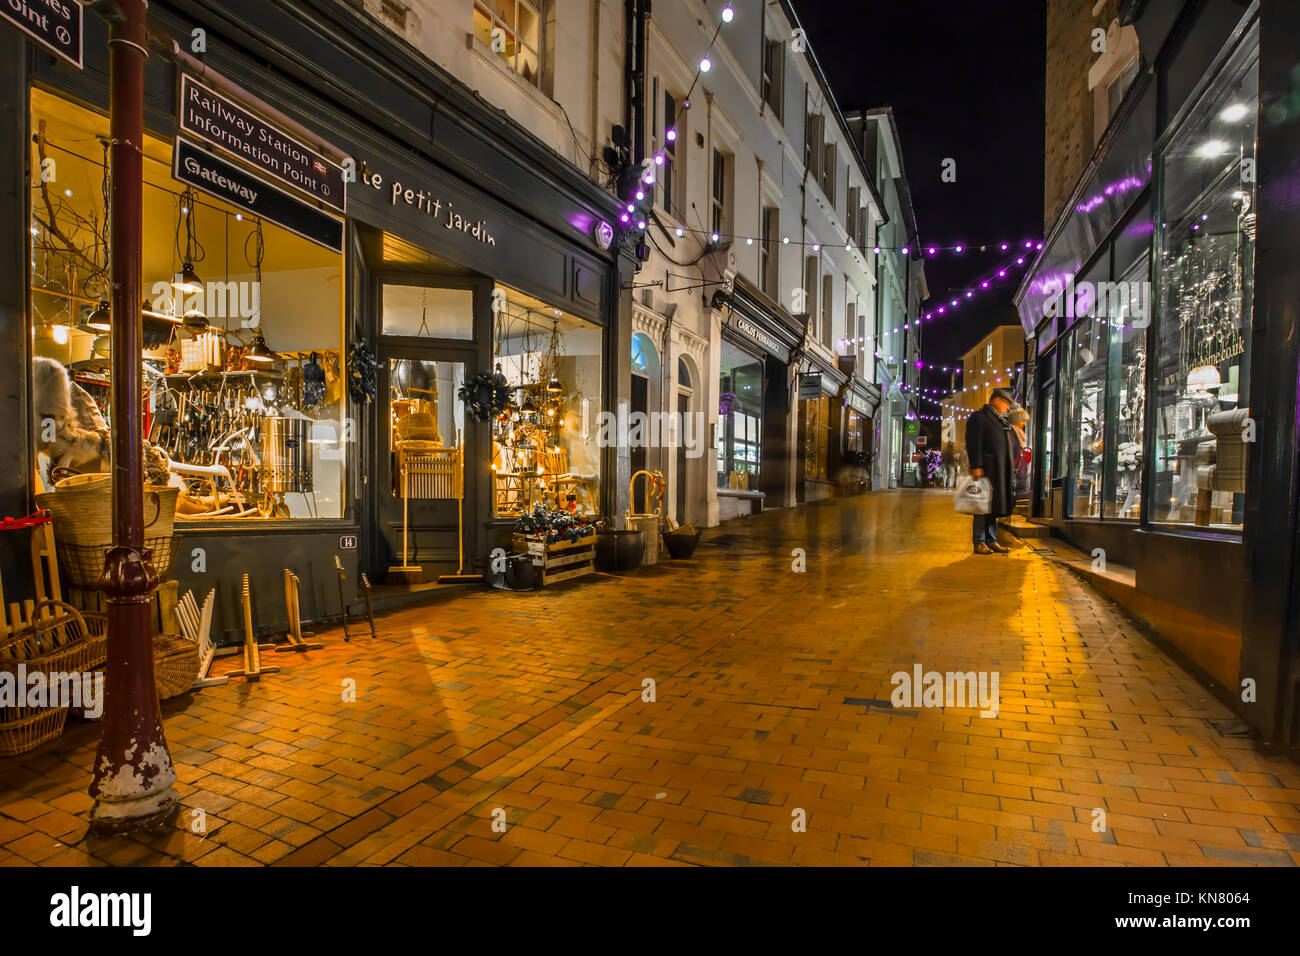 Chapel Place Royal Tunbridge Wells picturesque pedestrianised shopping  with independent artisan shops with red - Stock Image